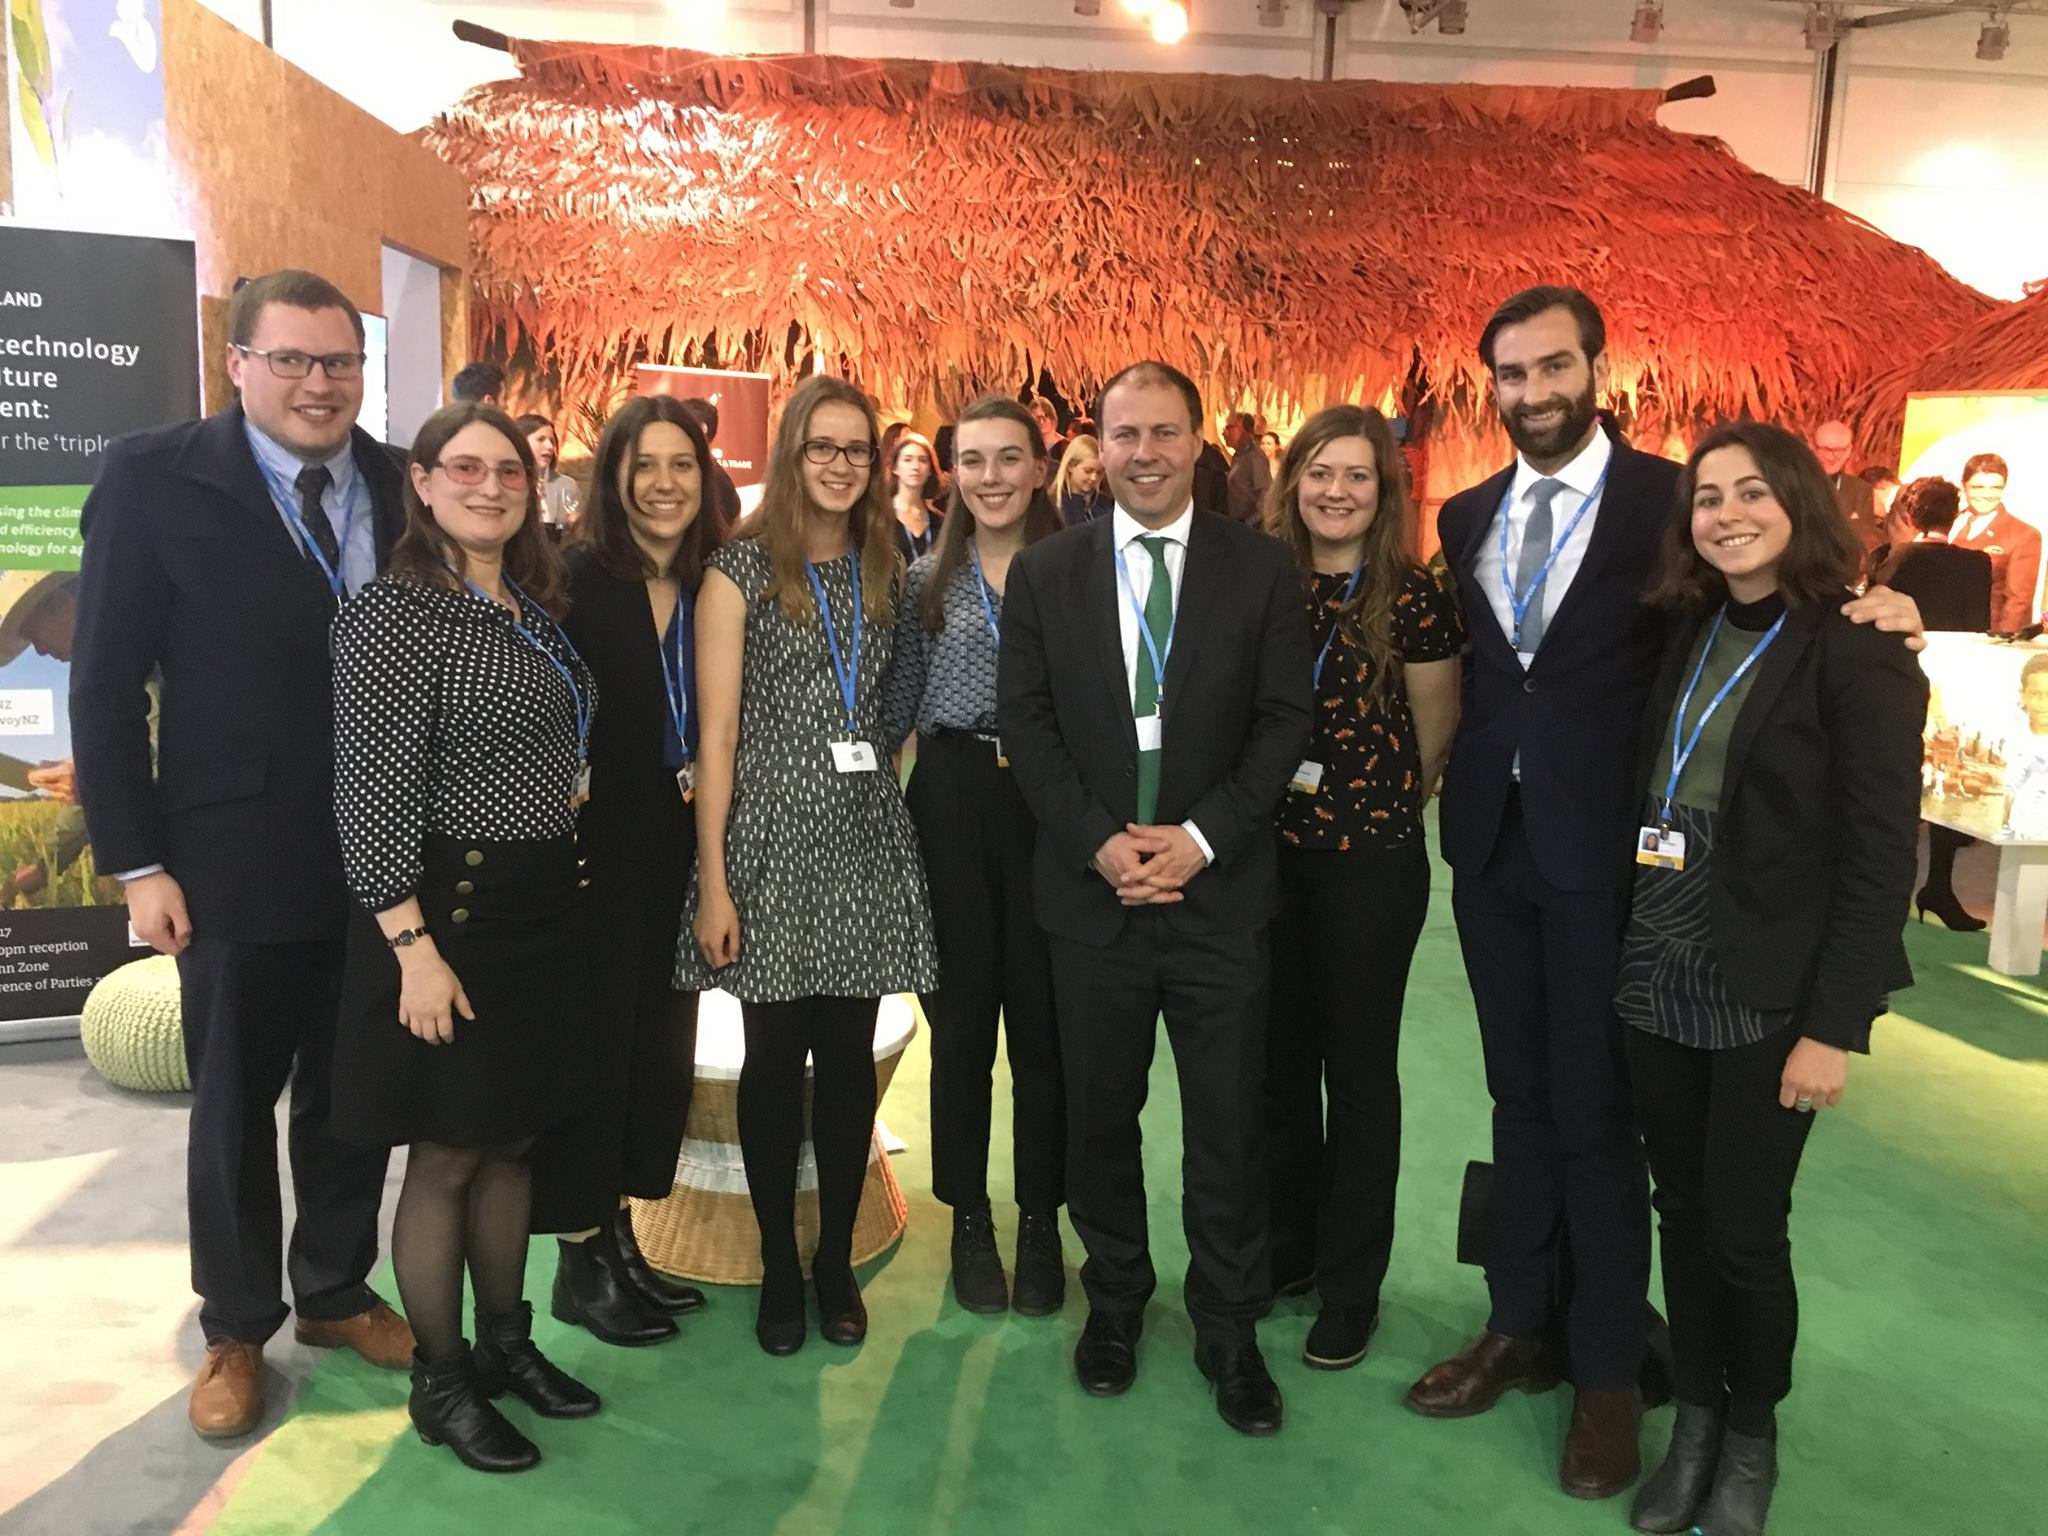 The COP23 delegates and staff meet with Minister Frydenberg at the Fiji Pavilion